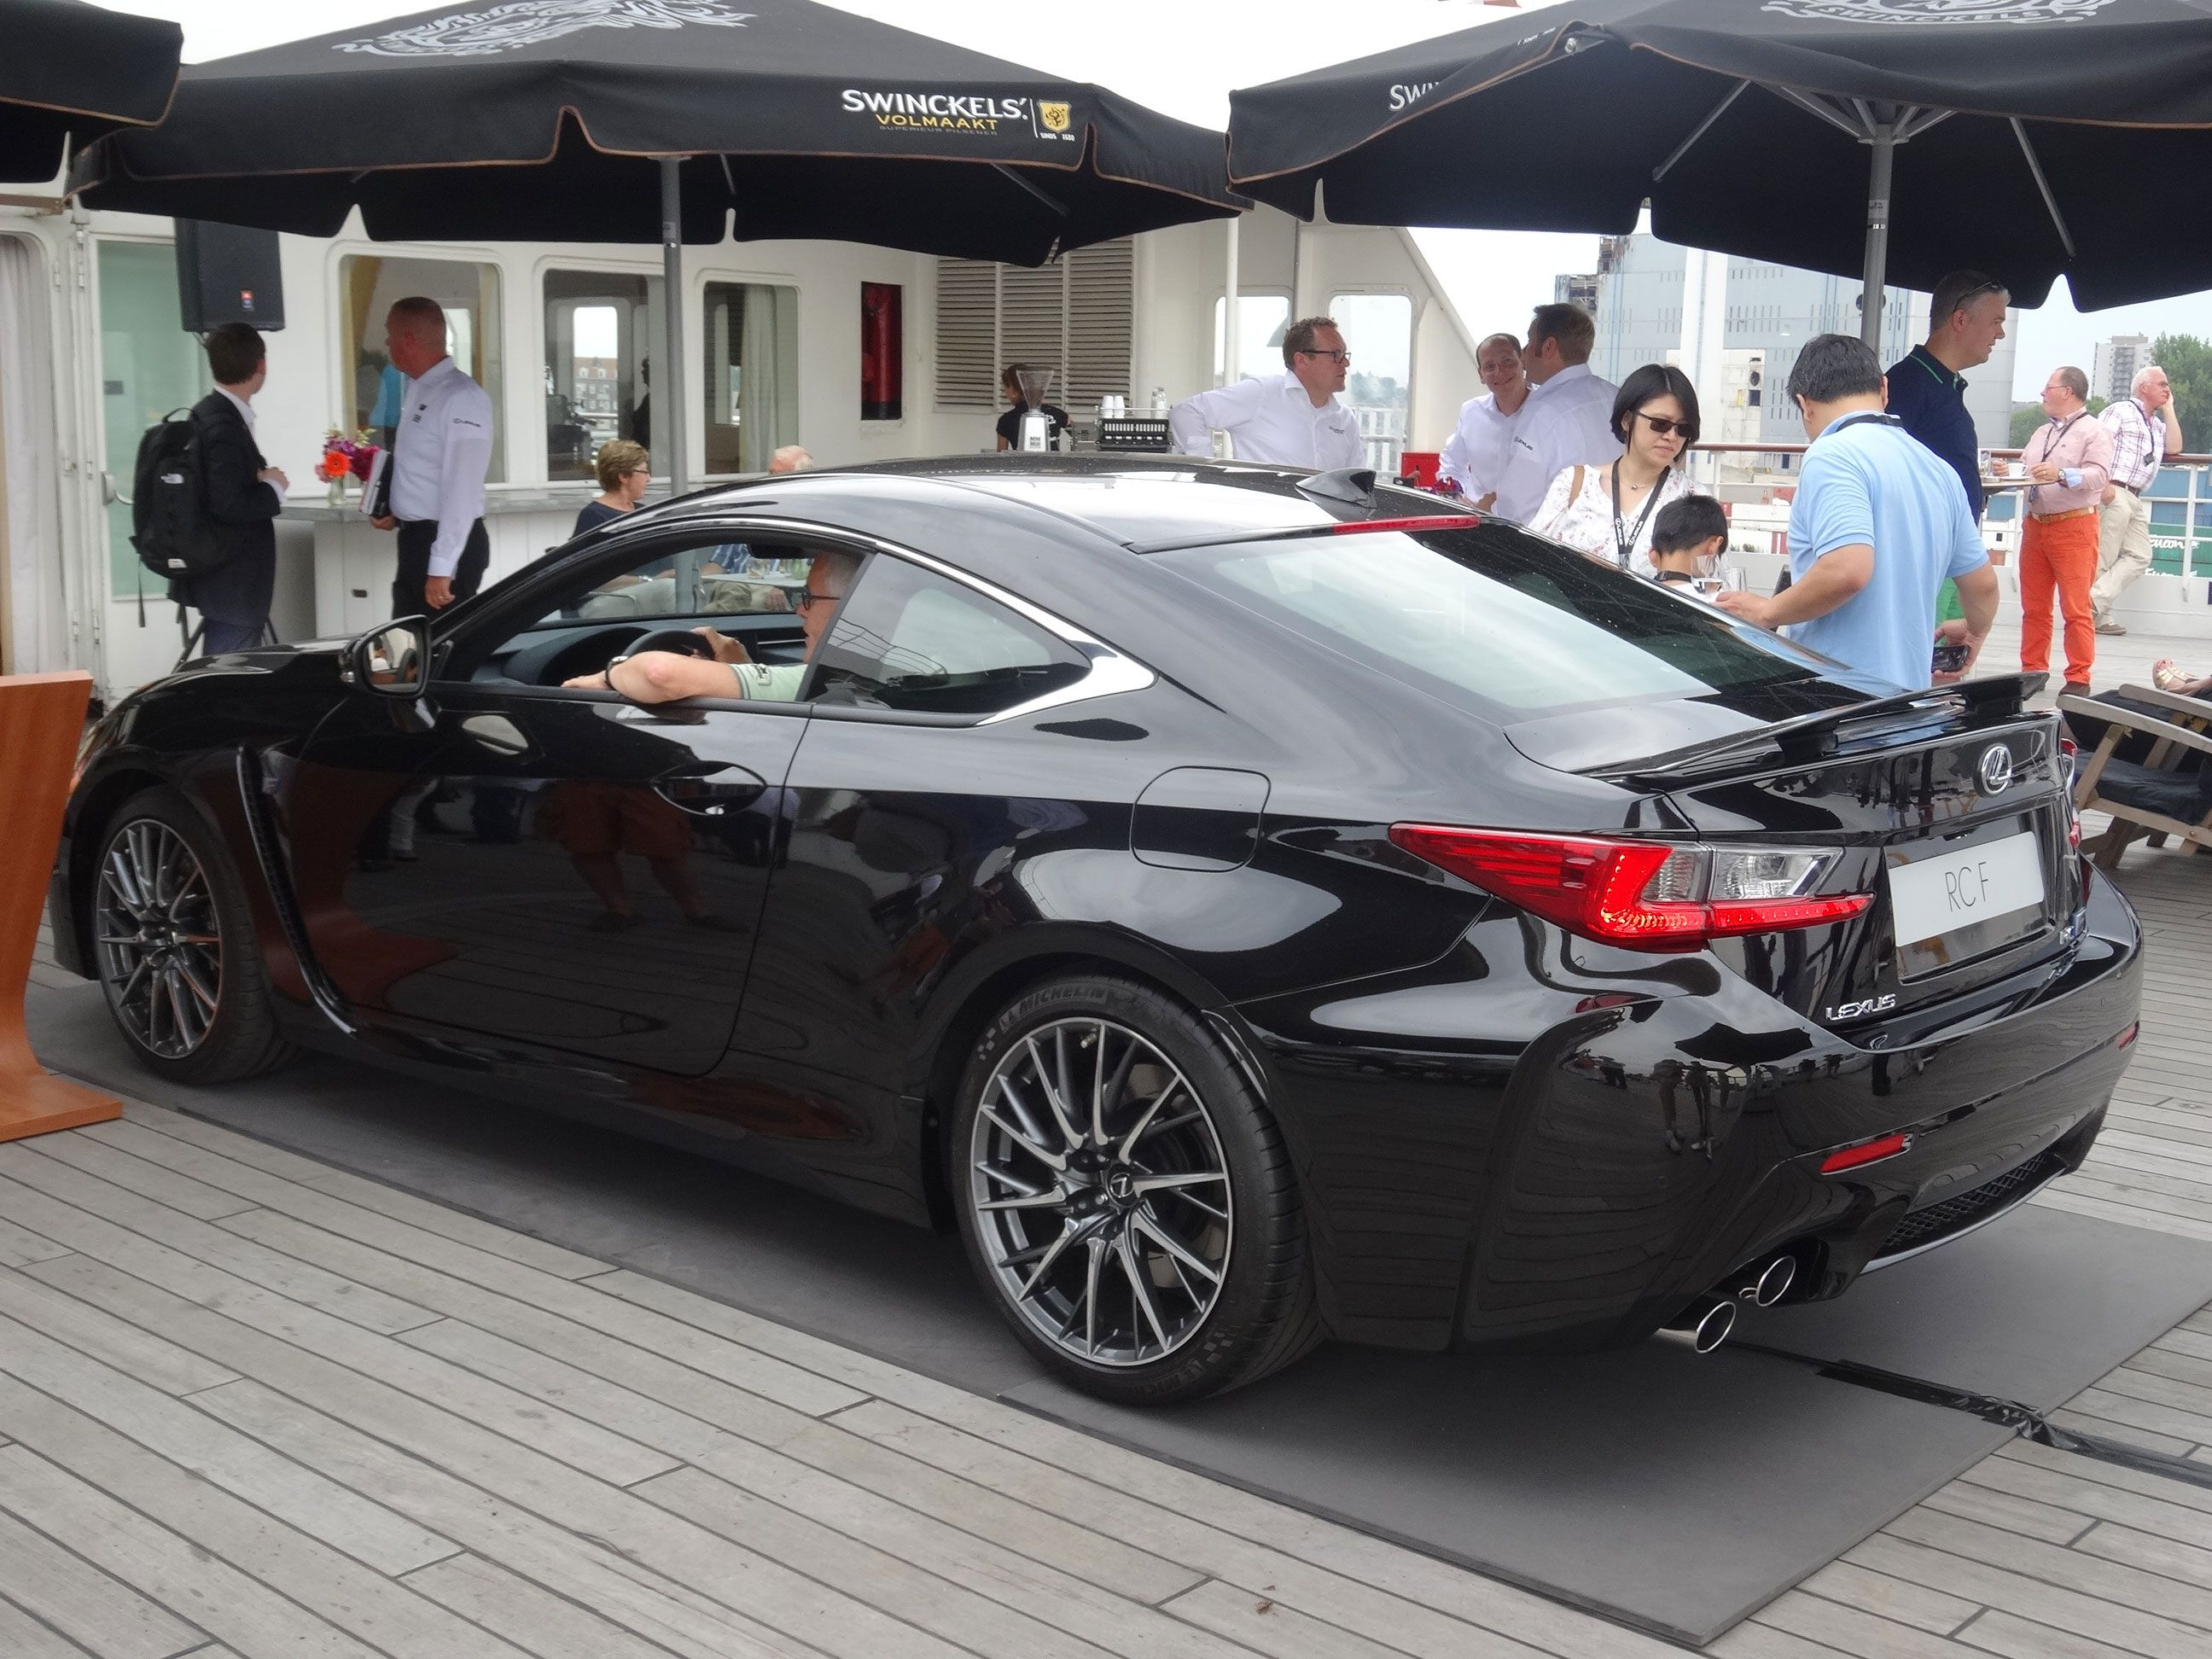 japanese cars japan index events jm car live about from used lexus auctions us latest auction information and news buy